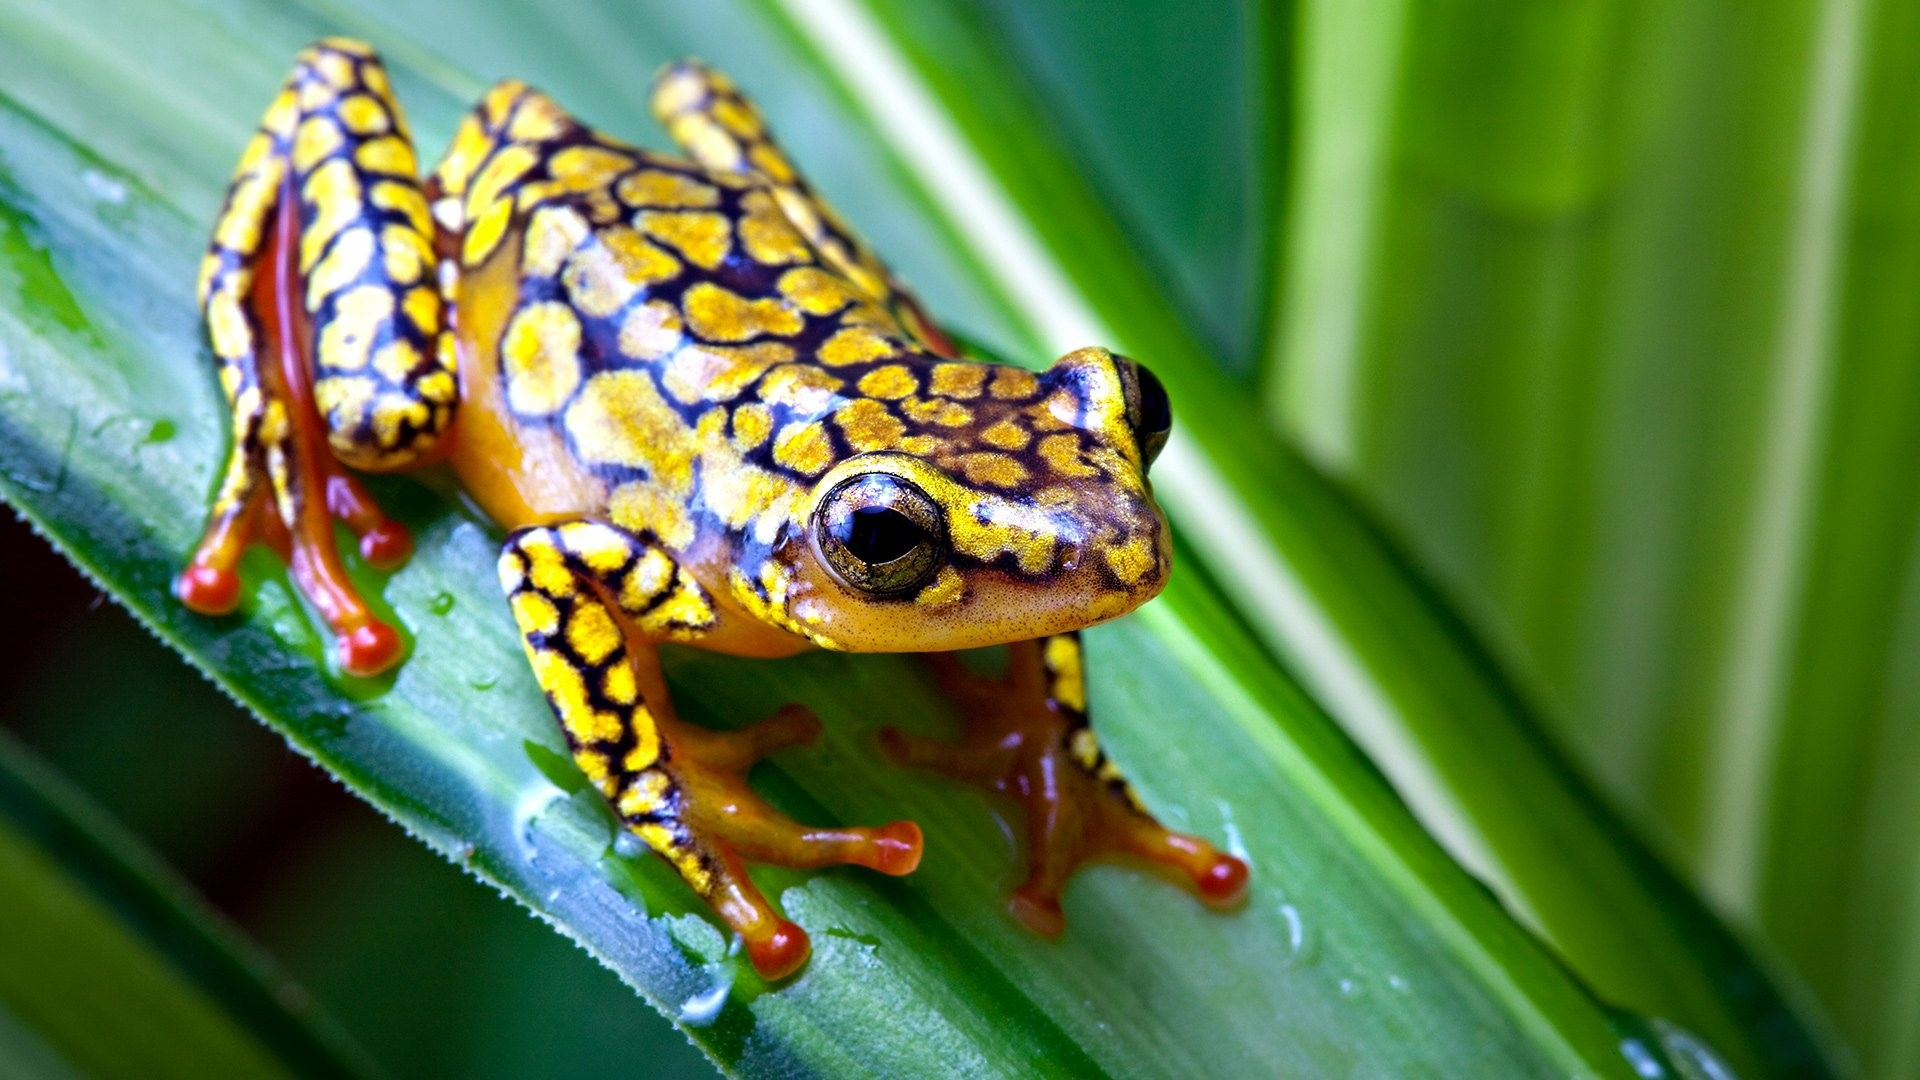 Res: 1920x1080, Frogs images Cute Frog HD wallpaper and background photos